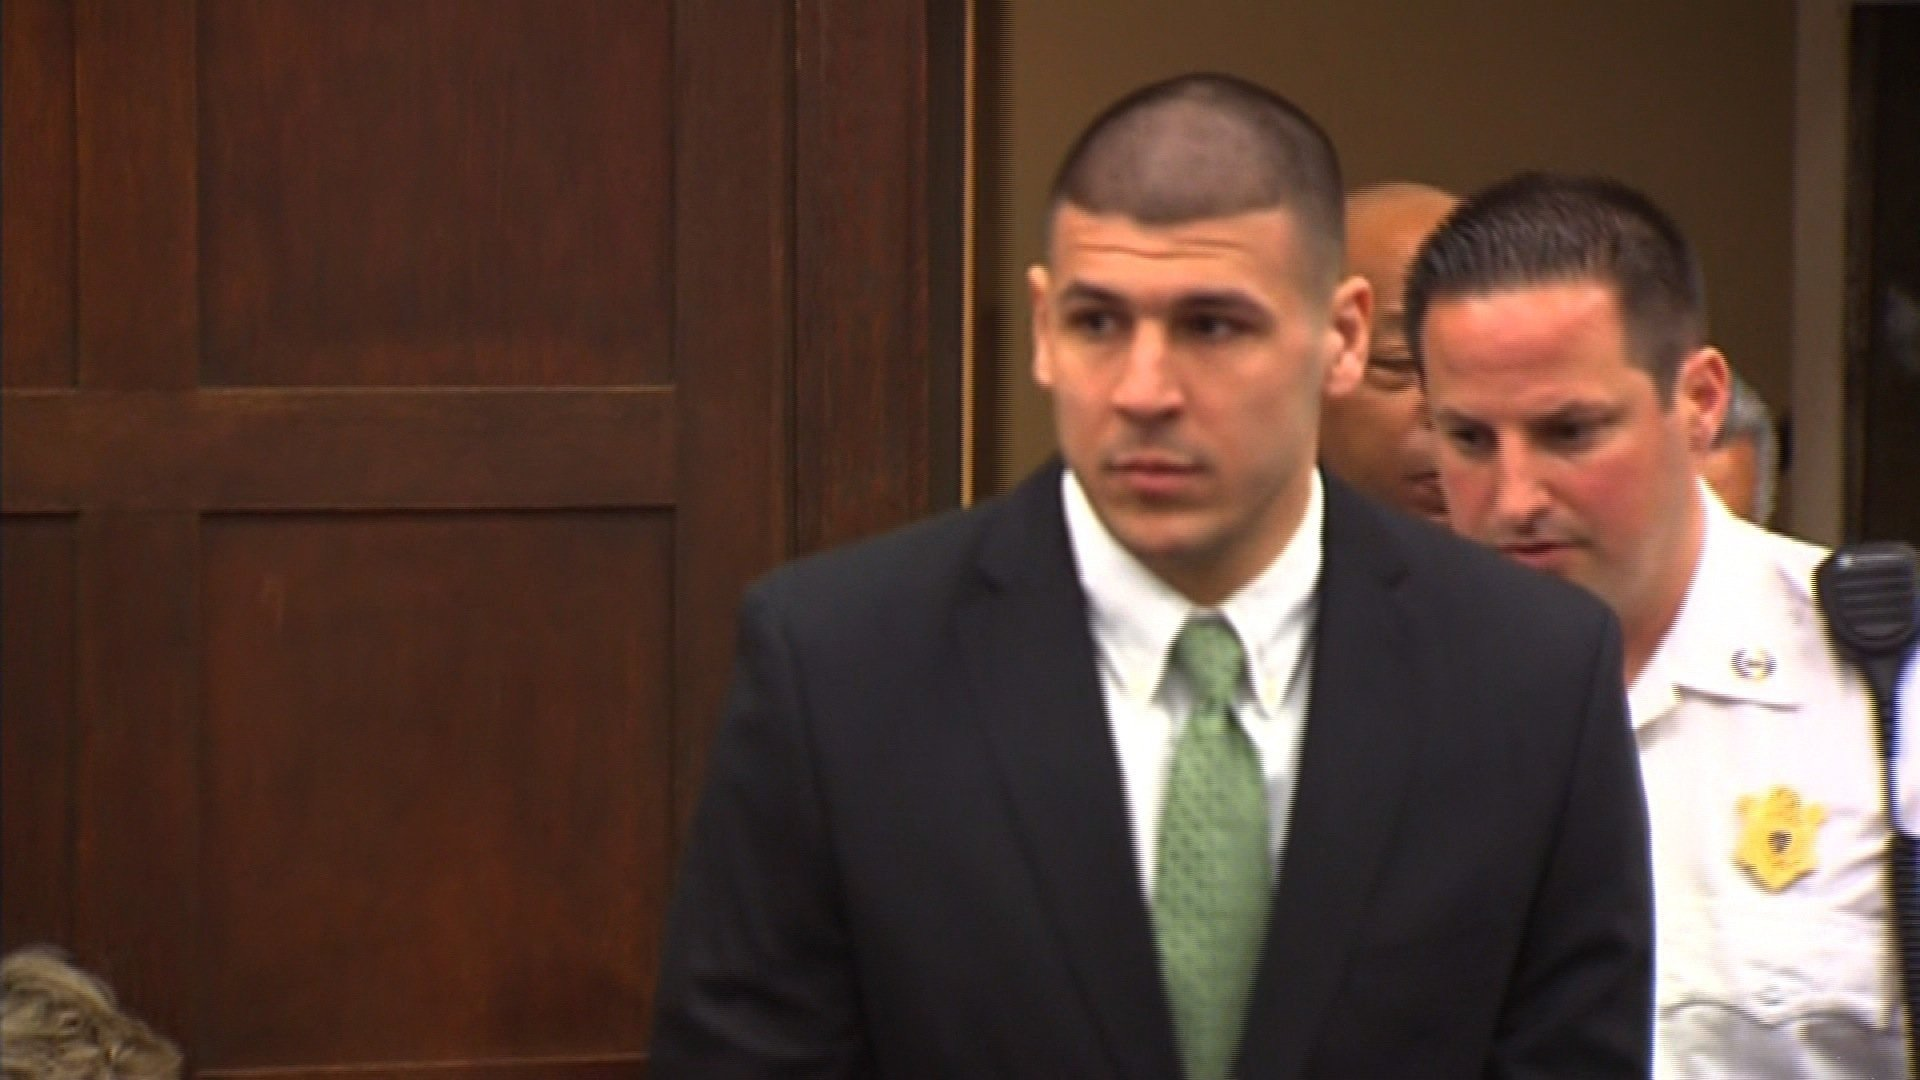 Aaron Hernandez, seen in court. (CNN file photo)